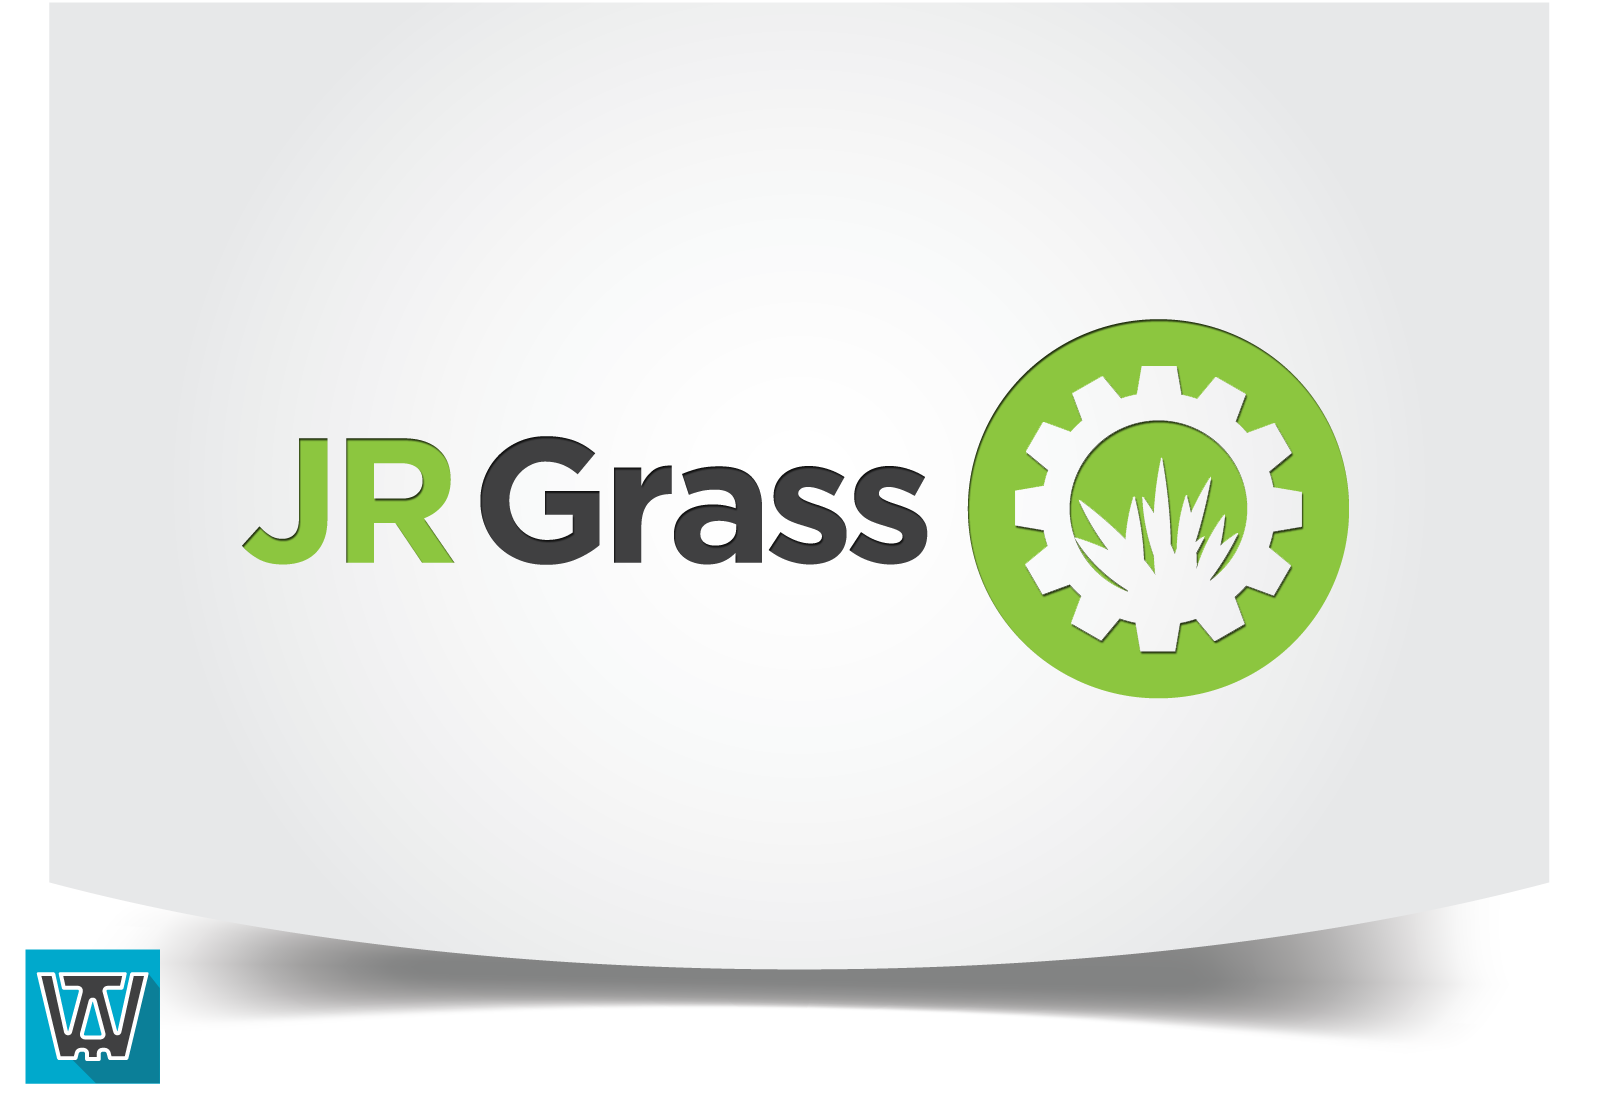 Logo Design by 354studio - Entry No. 51 in the Logo Design Contest Inspiring Logo Design for JR Grass.